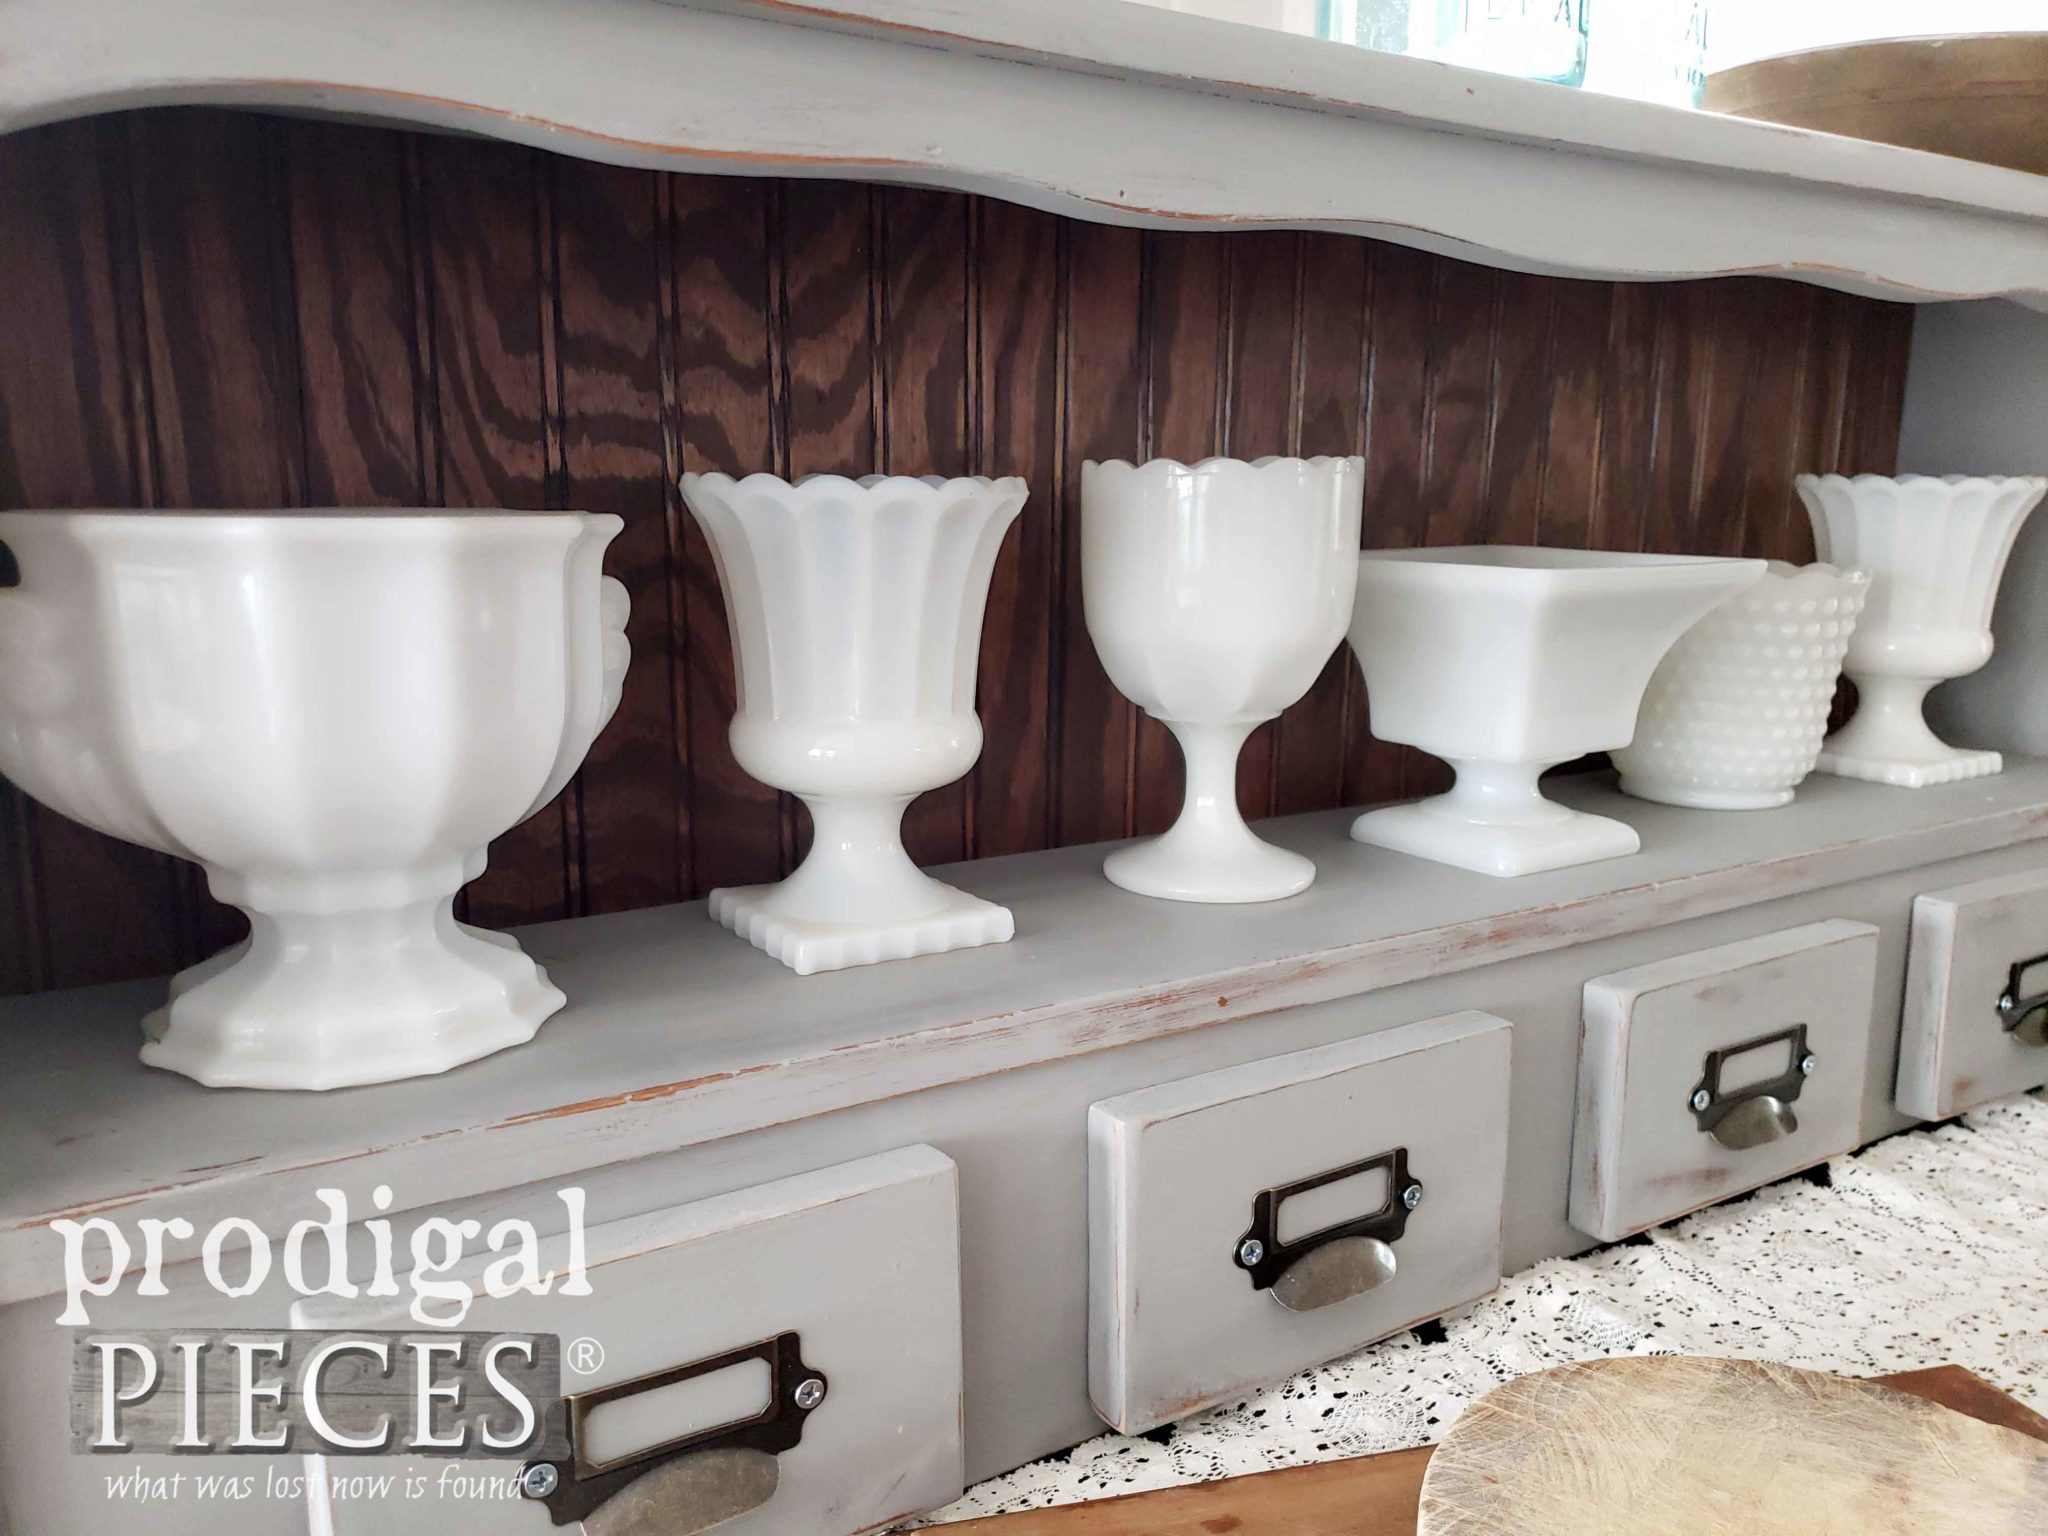 Vintage Milk Glass Urn Collection in Upcycled Bookcase Headboard by Larissa of Prodigal Pieces | prodigalpieces.com #prodigalpieces #diy #farmhouse #vintage #home #retro #homedecor